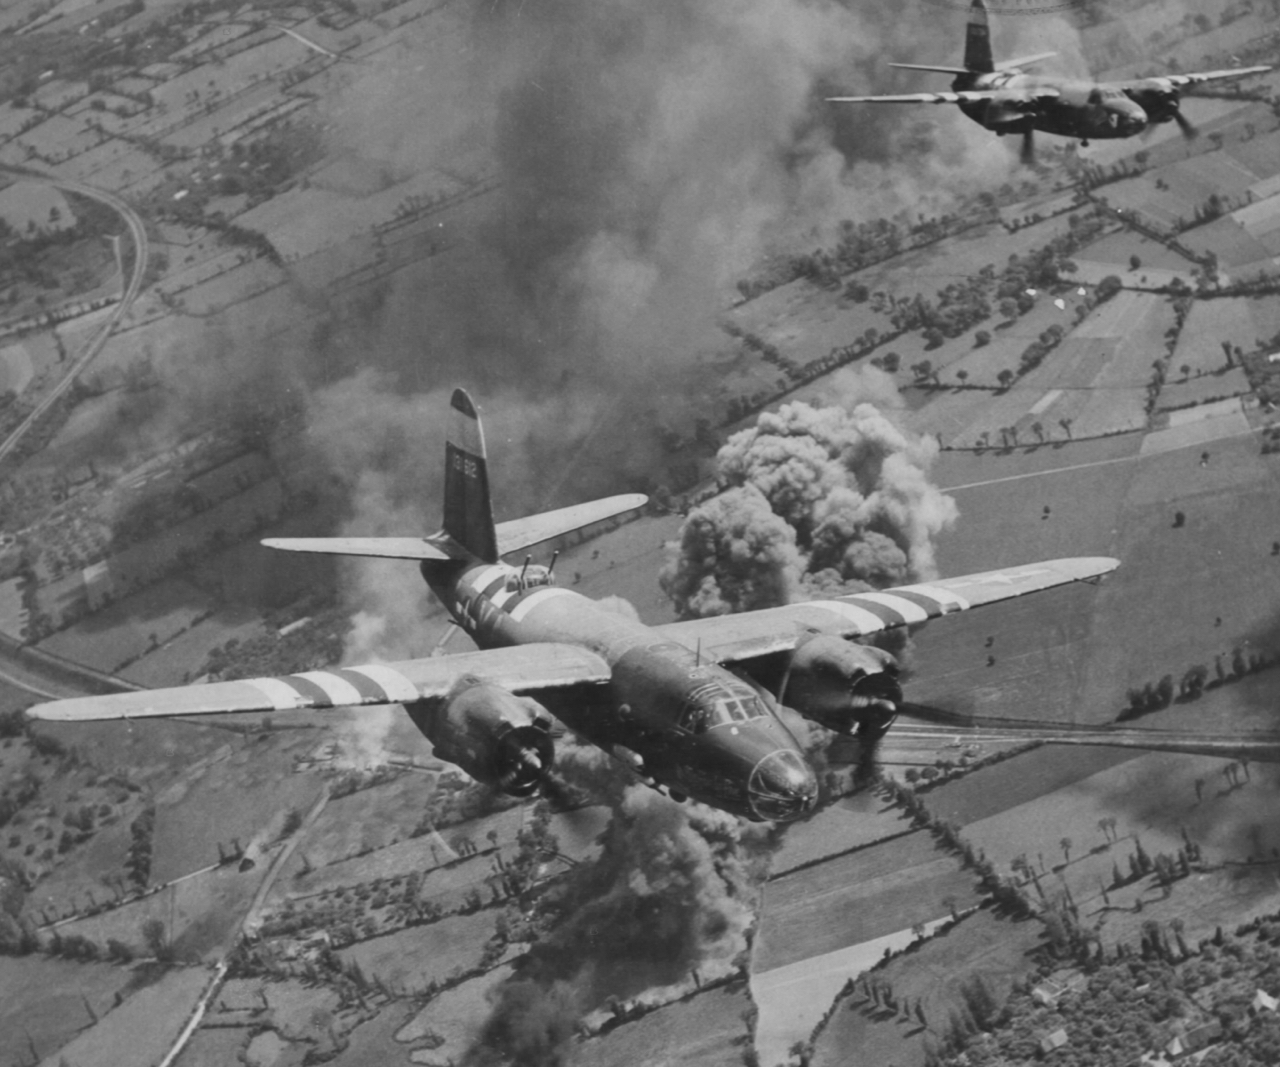 Dissecting Cobra: Air-Land Integration in Normandy - The